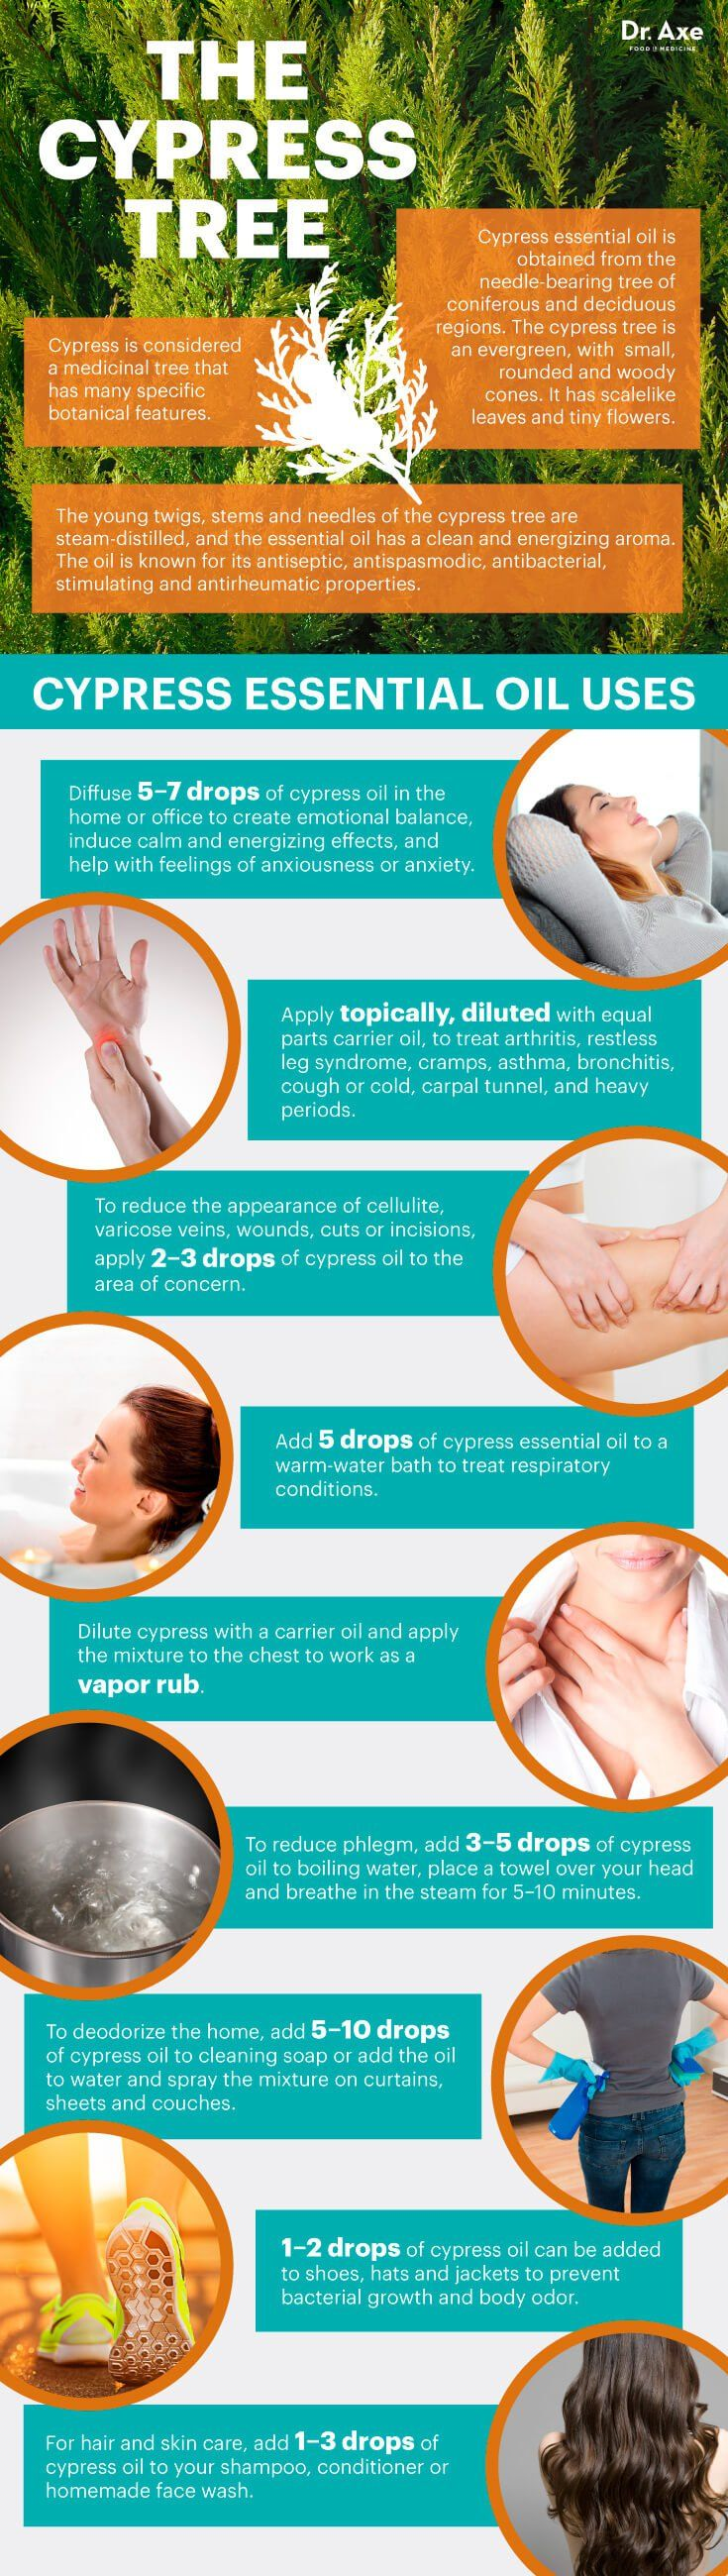 8 Surprising Benefits of Cypress Essential Oil - Dr. Axe